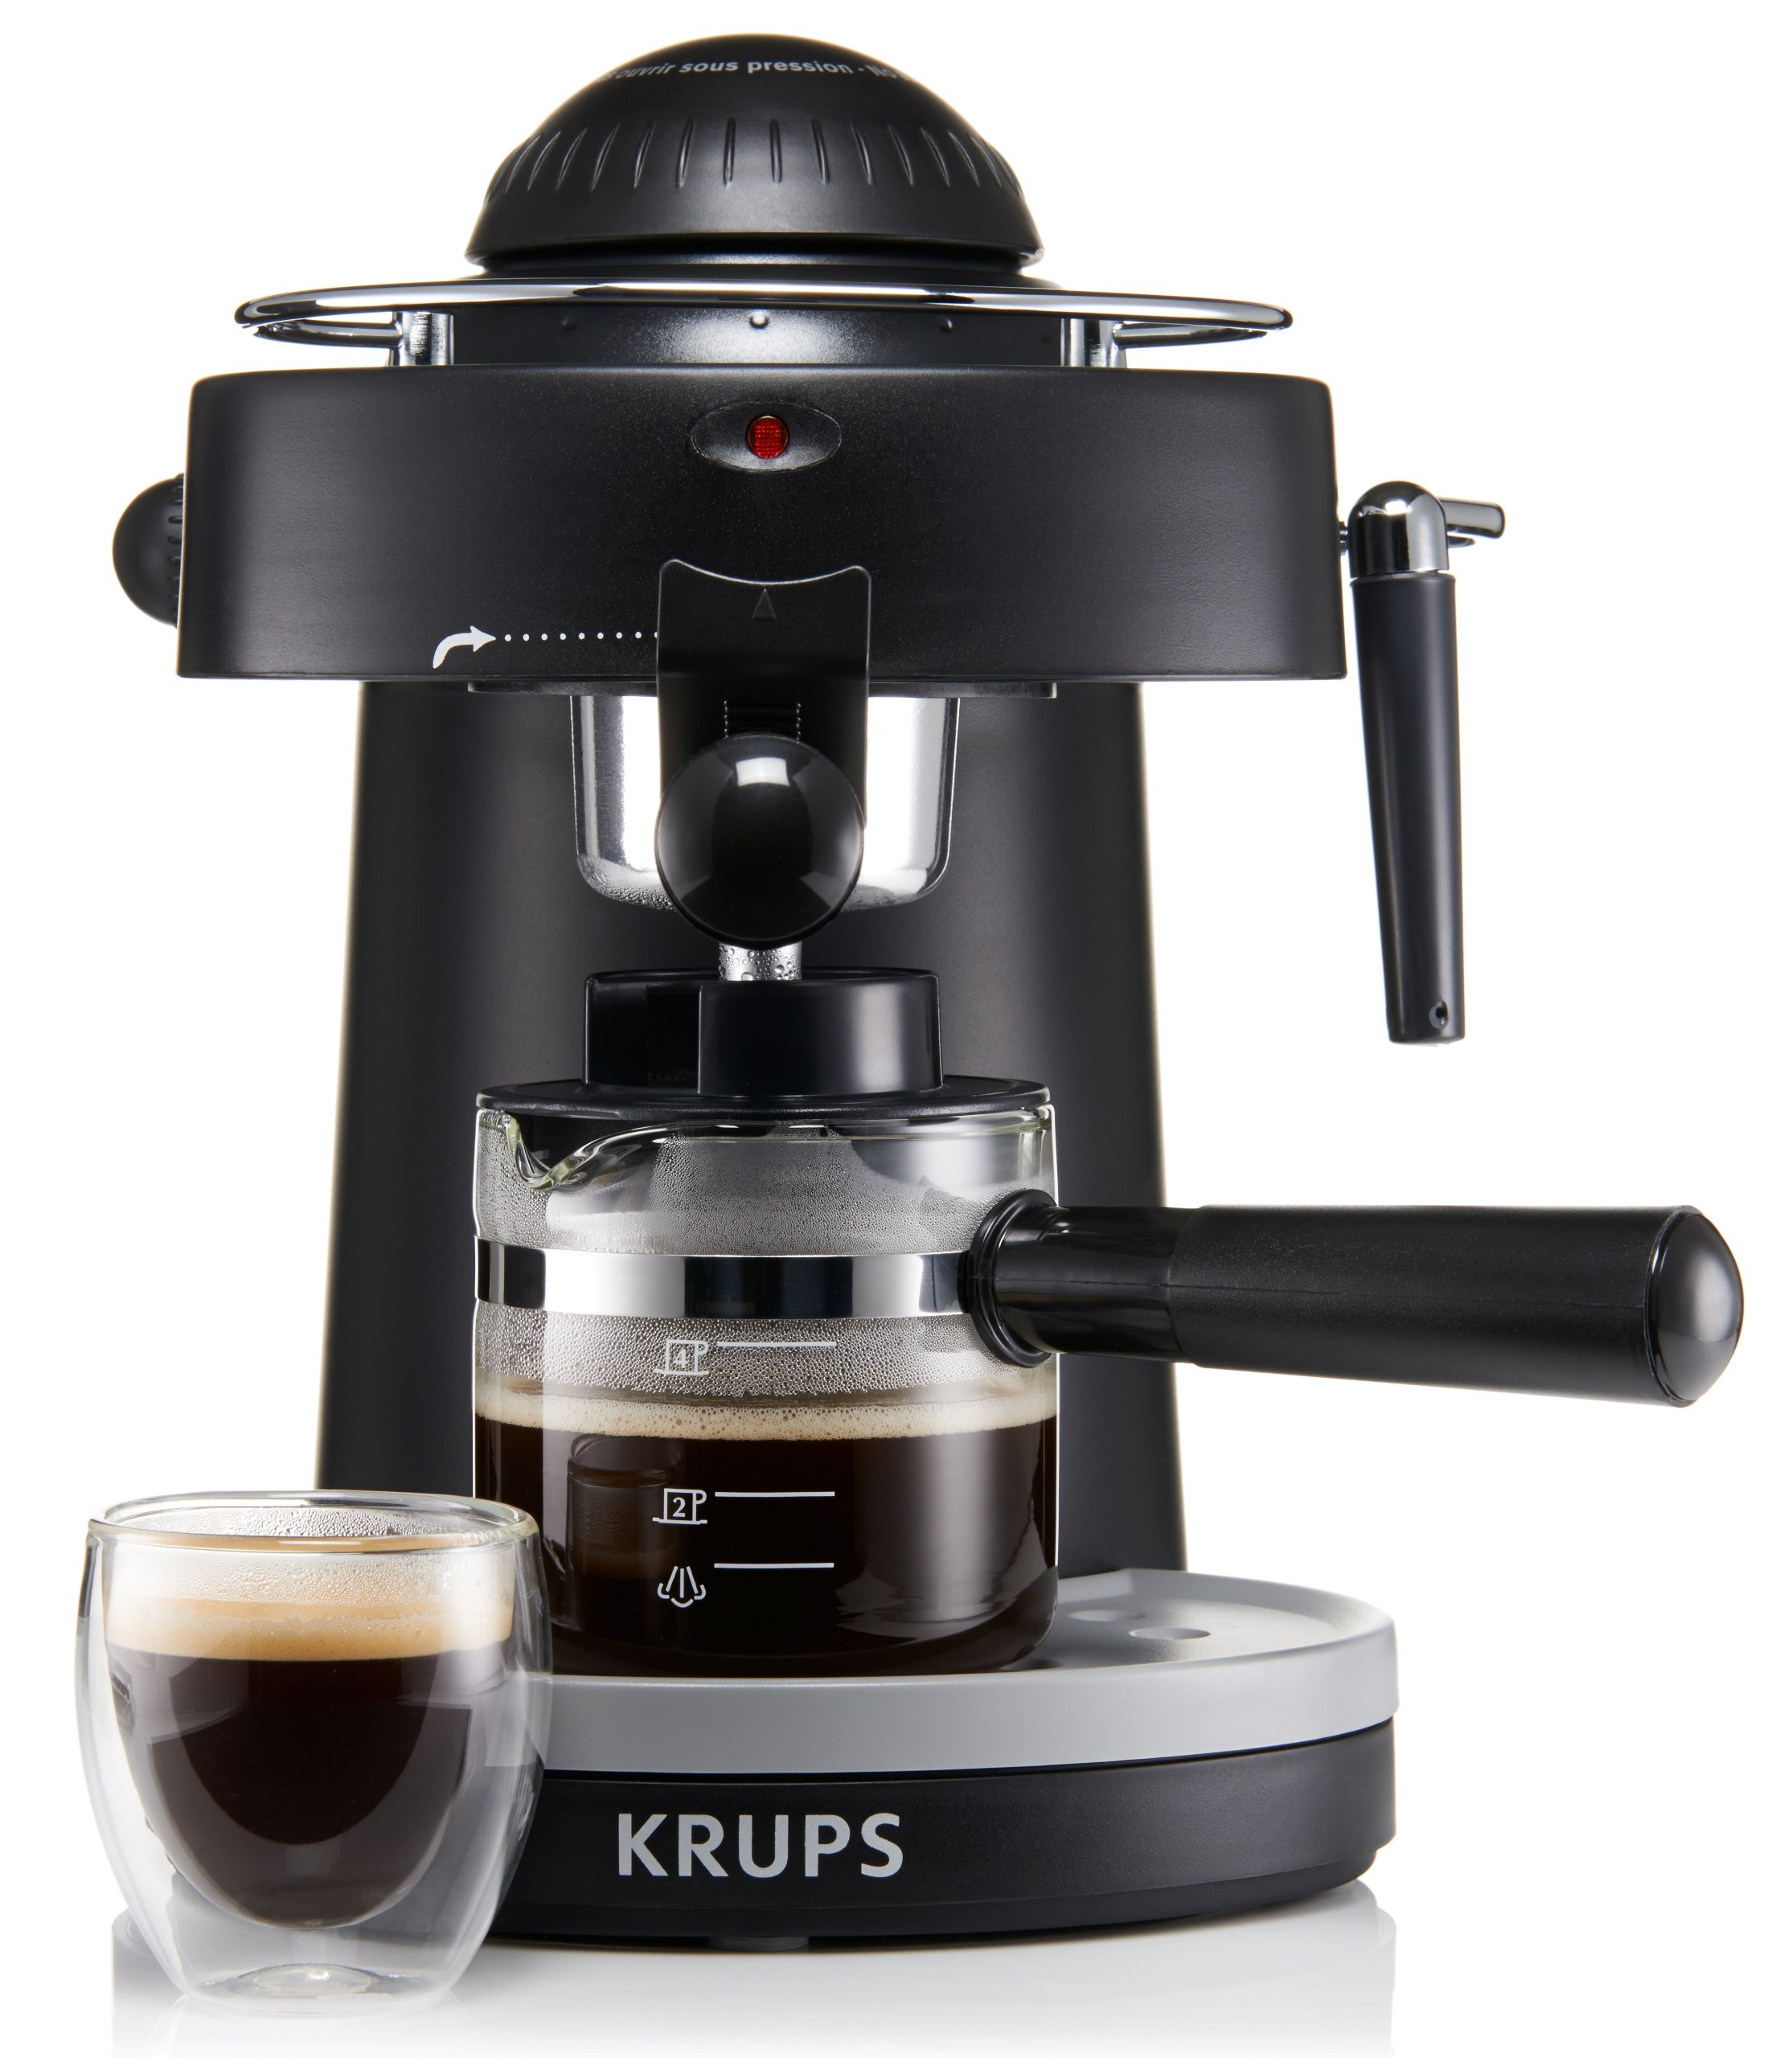 KRUPS XP100050 Steam Espresso Machine with Frothing Nozzle for Cappuccino, Black by KRUPS